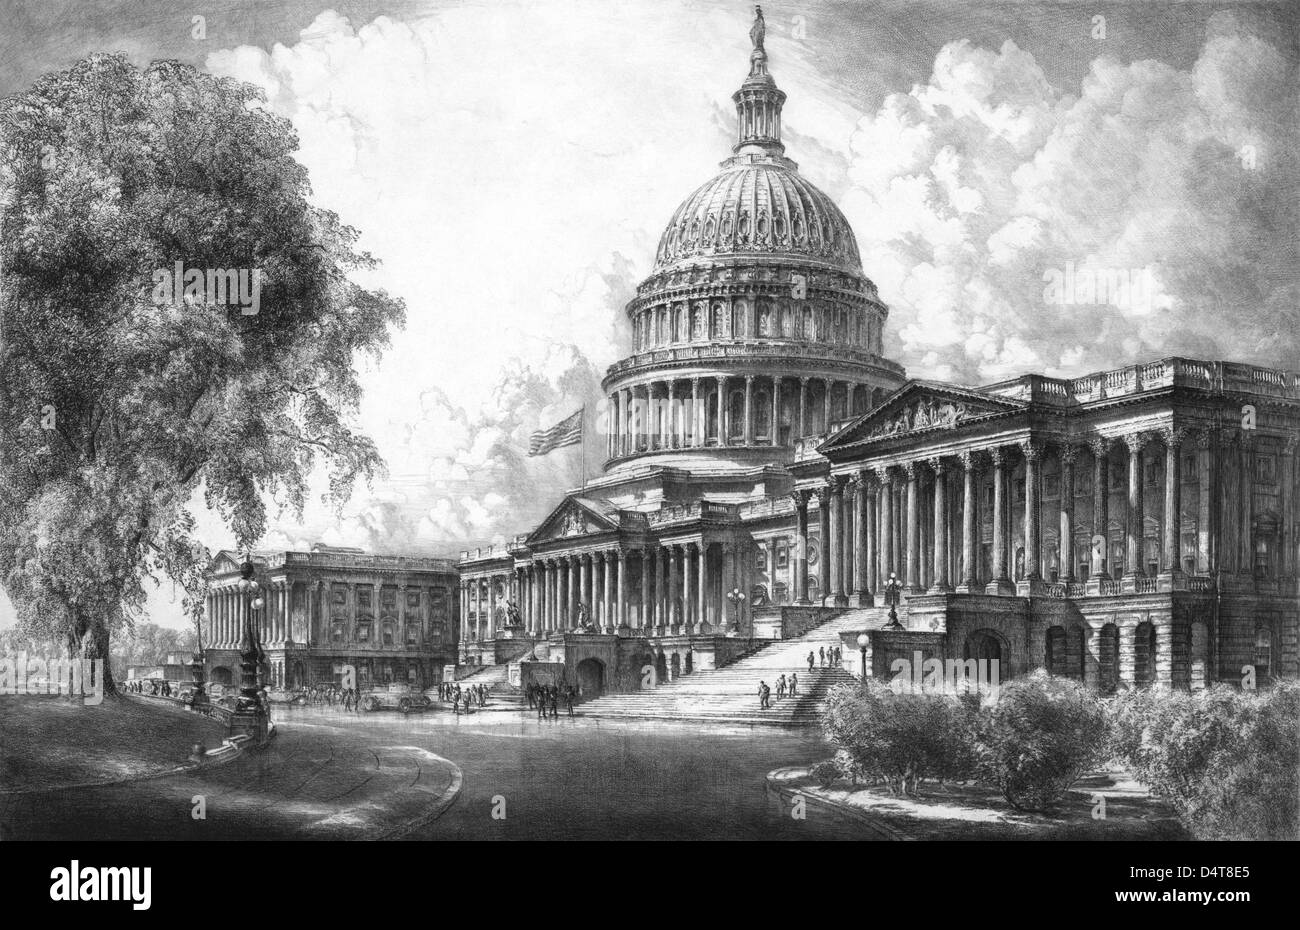 Digitally restored vintage black and white print of the U.S. Capitol Building. - Stock Image